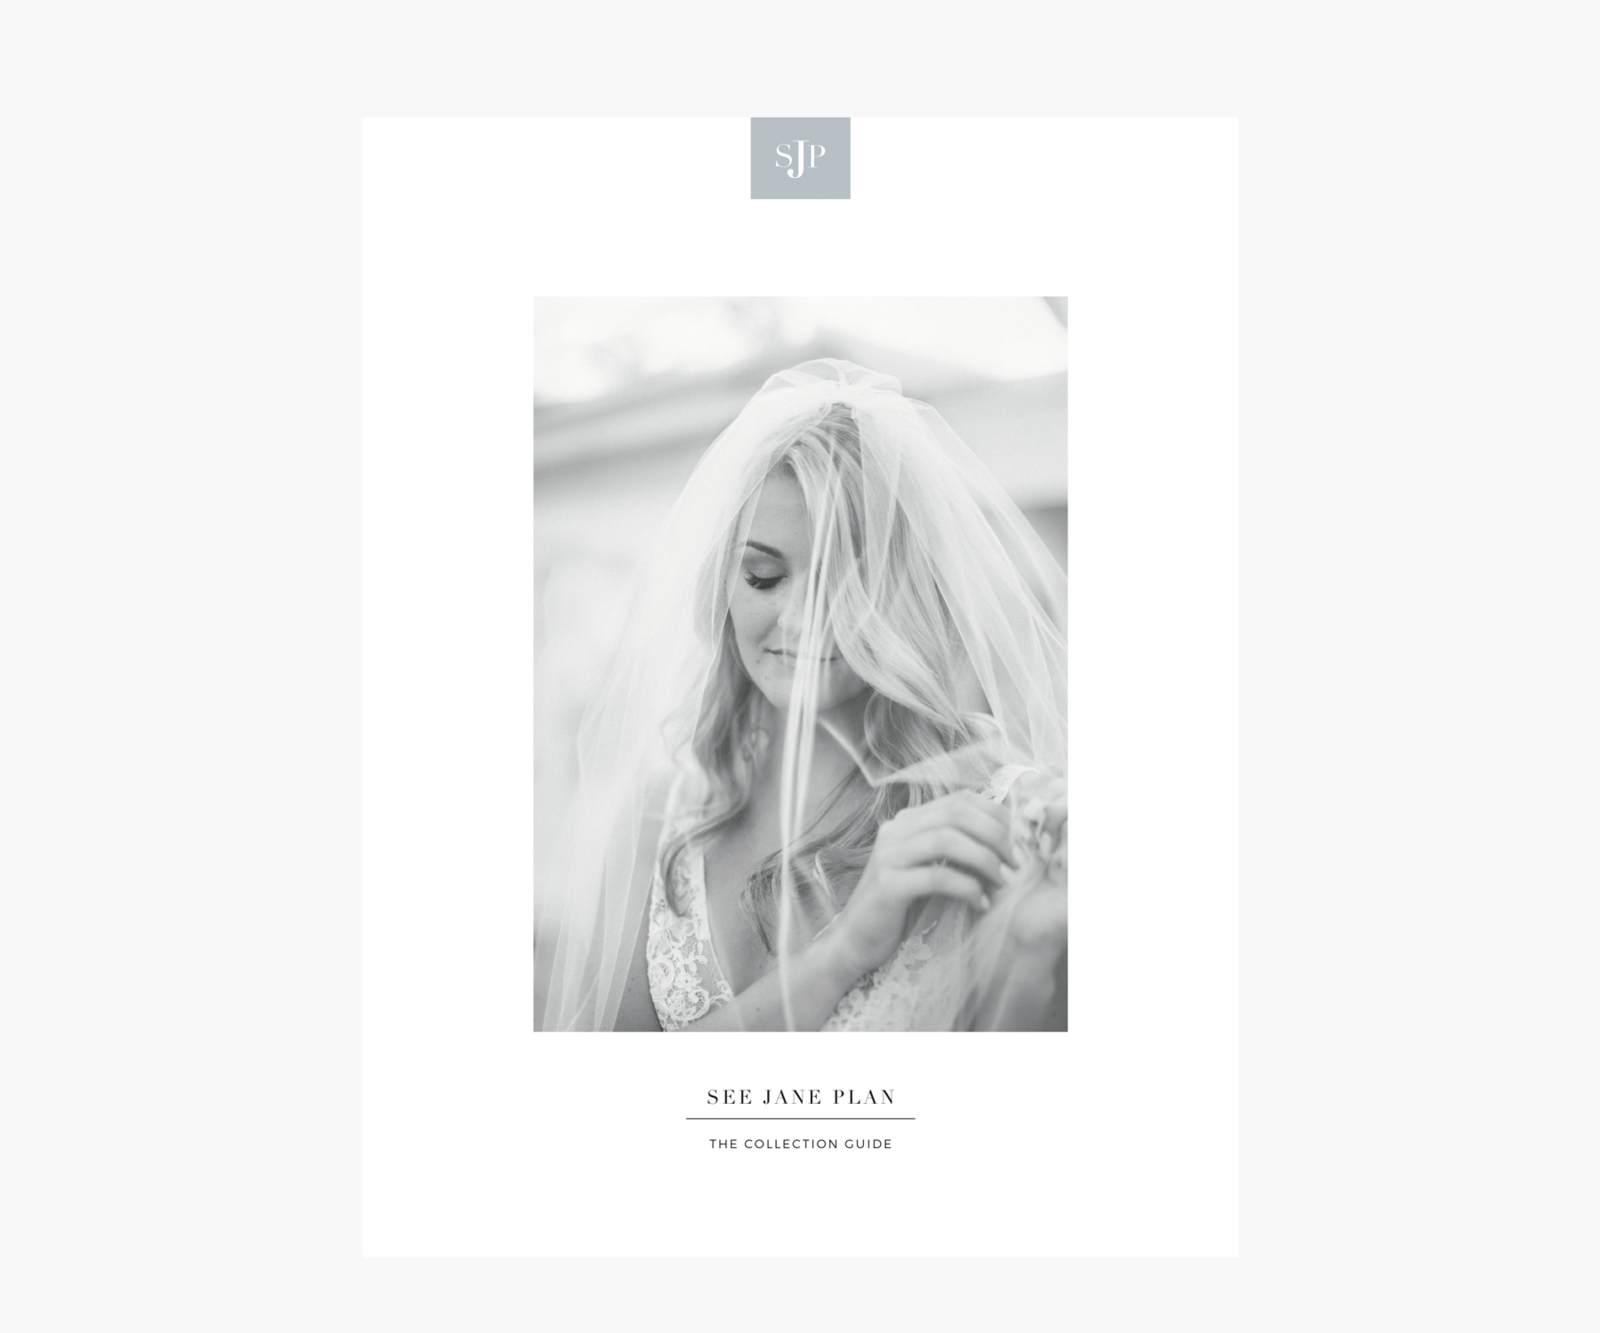 Elegant pricing guide templates for photograpehrs